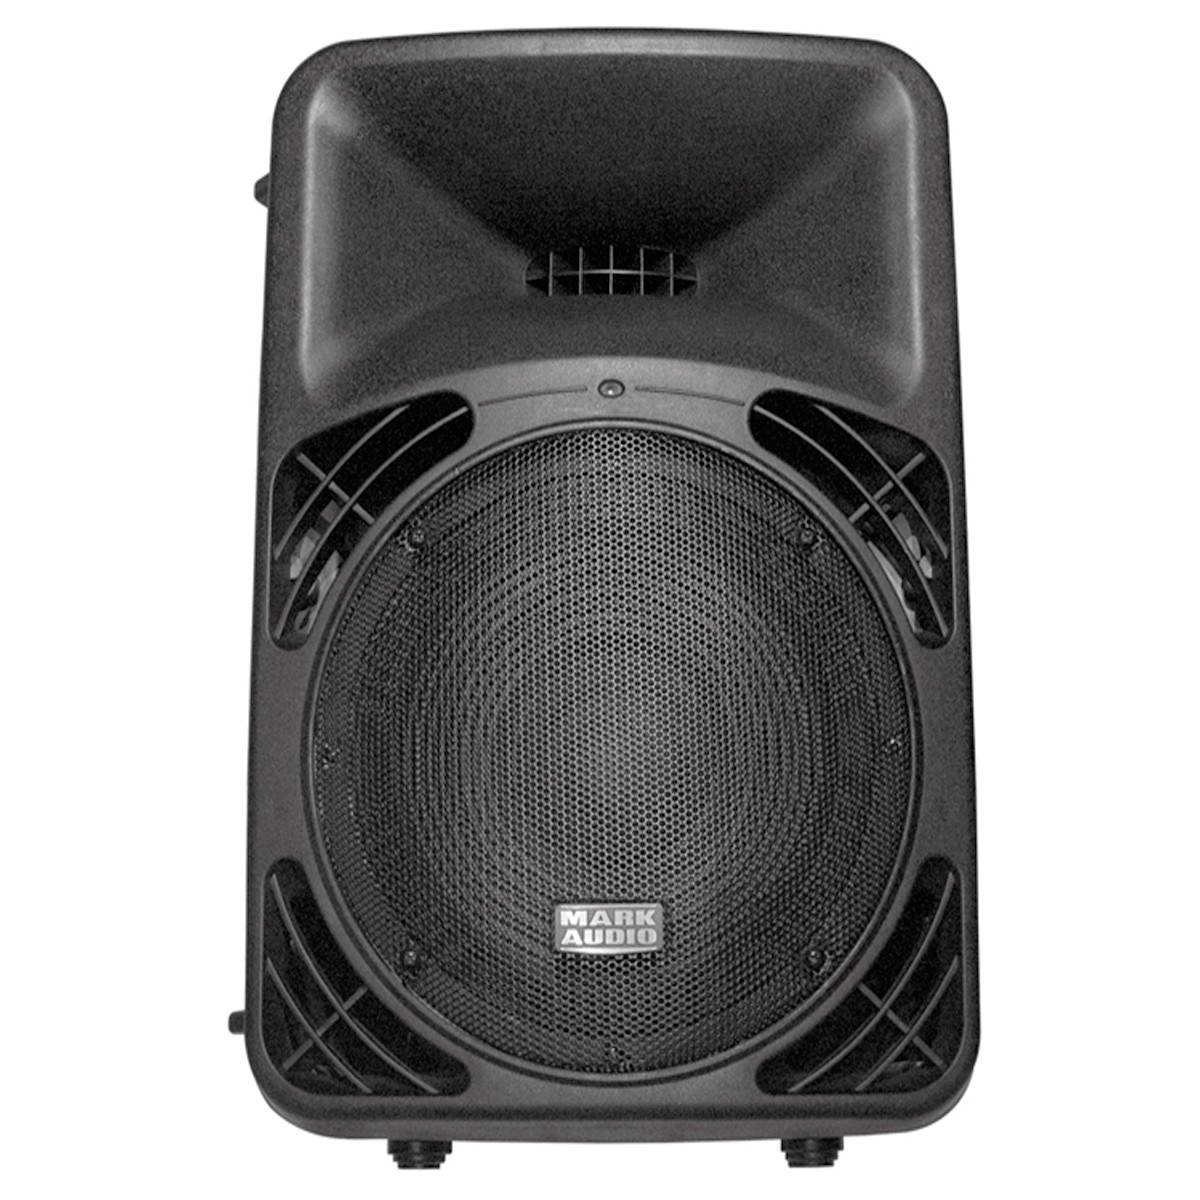 MK1530A - Caixa Ativa 300W c/ Player USB MK 1530 A - Mark Audio